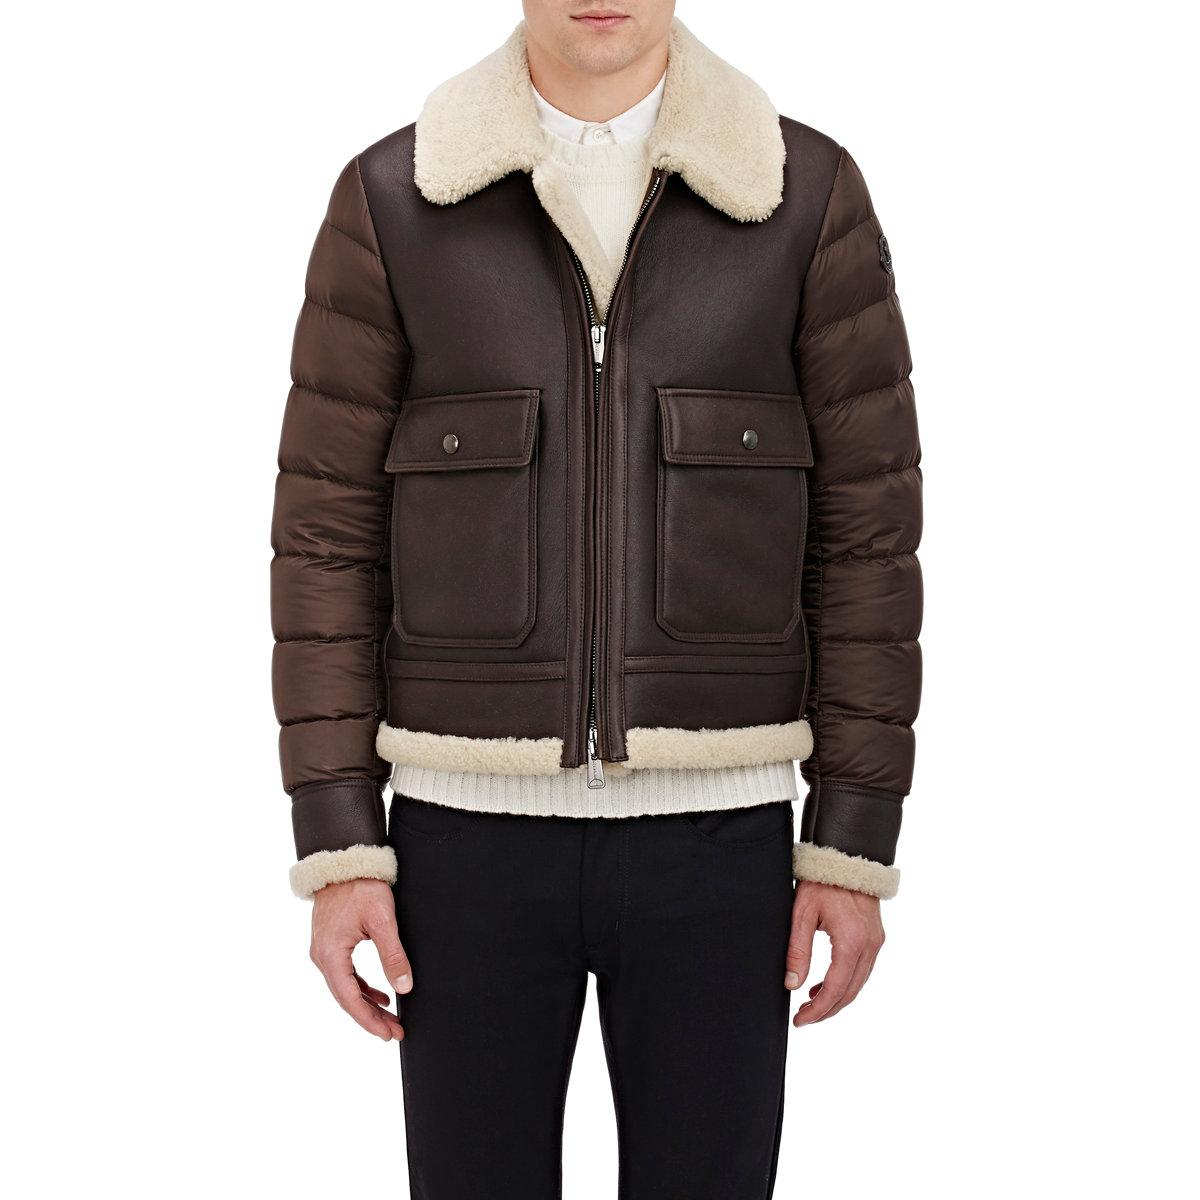 Find great deals on eBay for bomber jackets mens. Shop with confidence.